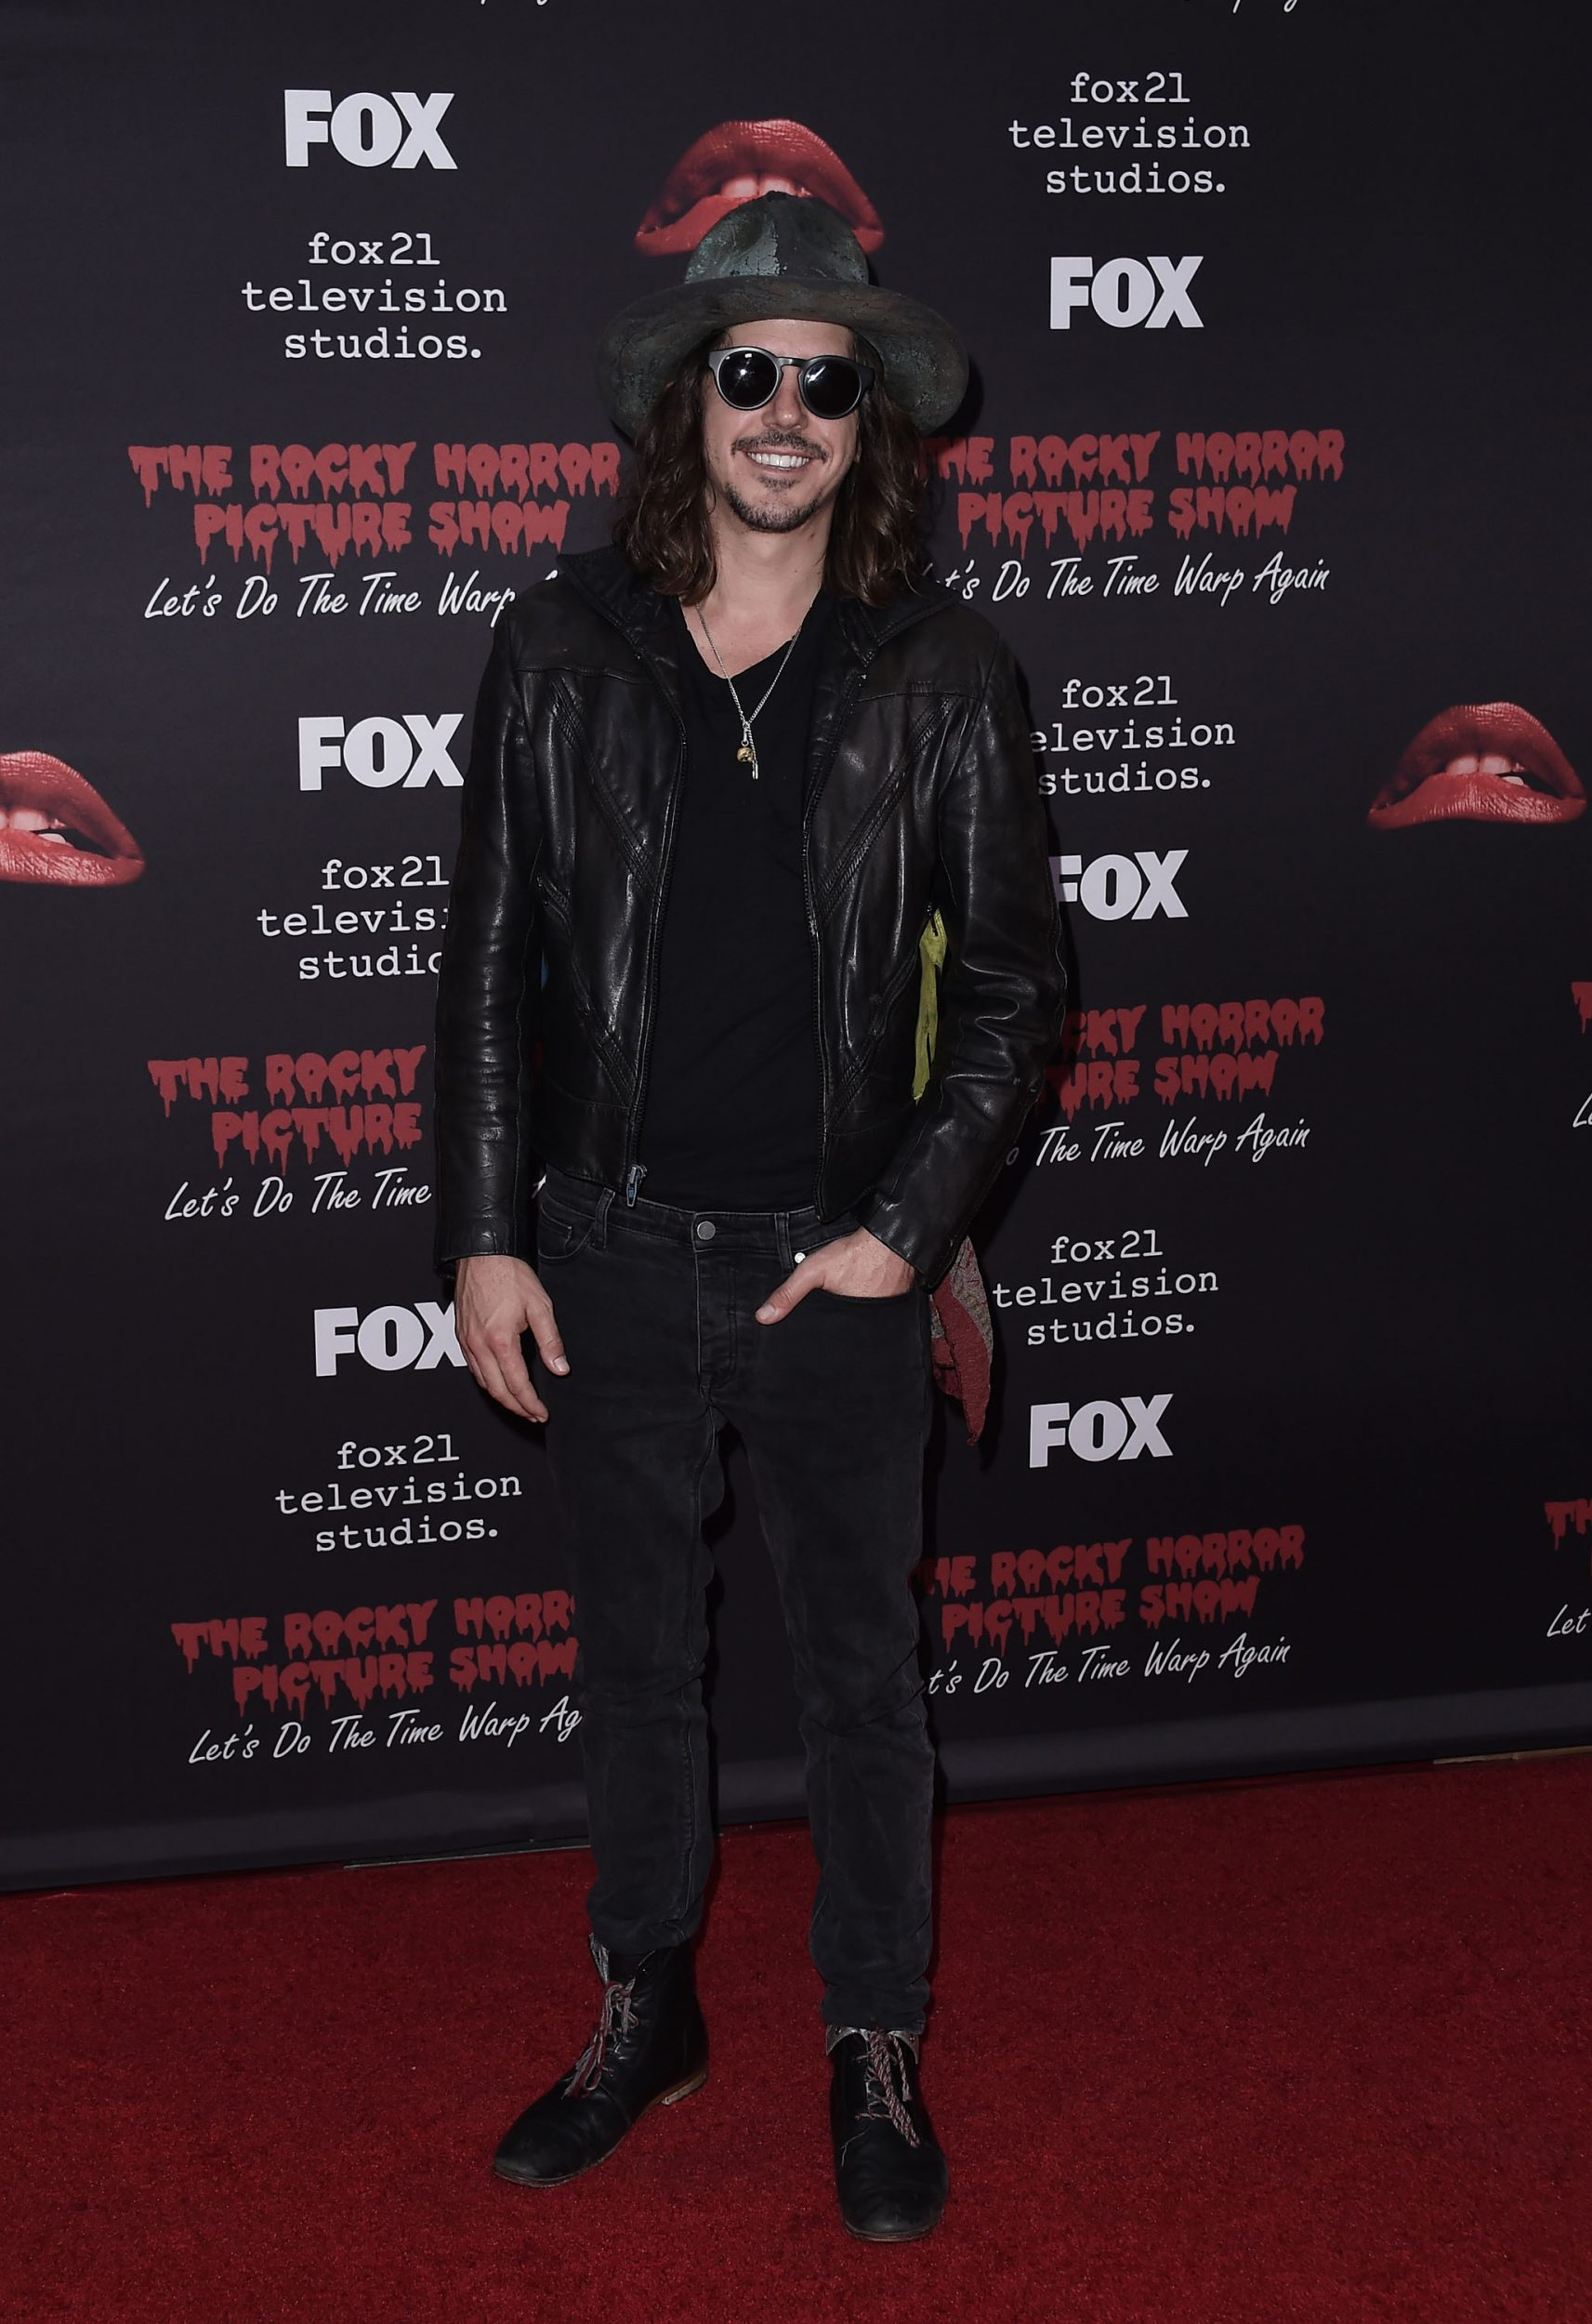 THE ROCKY HORROR PICTURE SHOW: Let's Do The Time Warp Again (and Transylvanians!): Music Producer Cisco Adler arrives at THE ROCKY HORROR PICTURE SHOW: Let's Do The Time Warp Again (and Transylvanians!) premiere party red carpet at The Roxy on Thursday, Oct. 13, in Los Angeles, CA. THE ROCKY HORROR PICTURE SHOW: Let's Do The Time Warp Again (And Transylvanians!) premieres Thursday, Oct. 20 (8:00-10:00 PM ET/PT) on FOX. © 2016 FOX BROADCASTING CR: Scott Kirkland/FOX